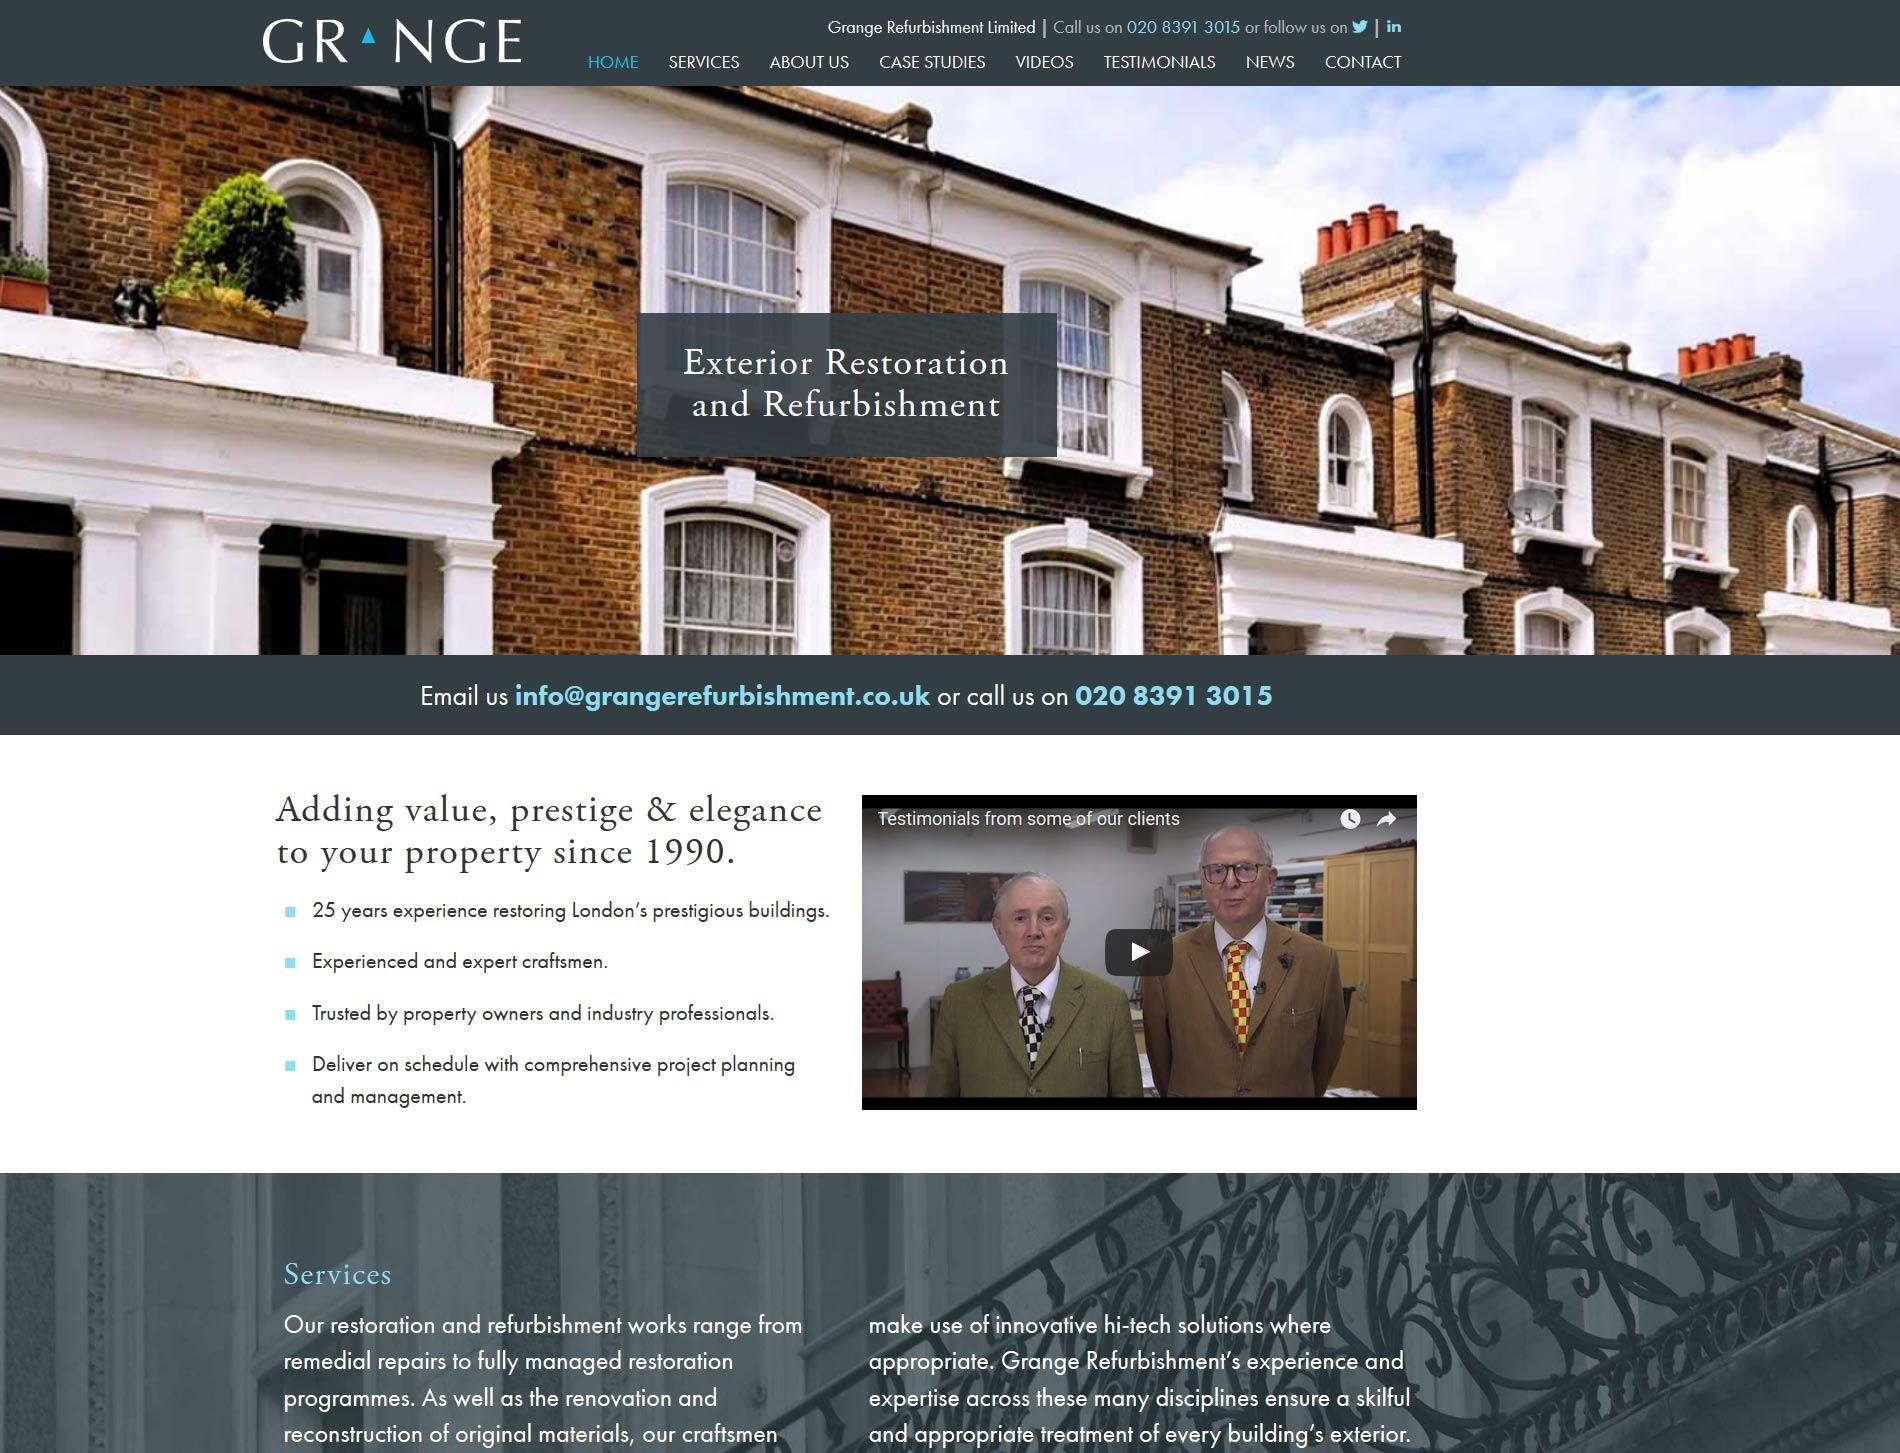 grange refurbishment